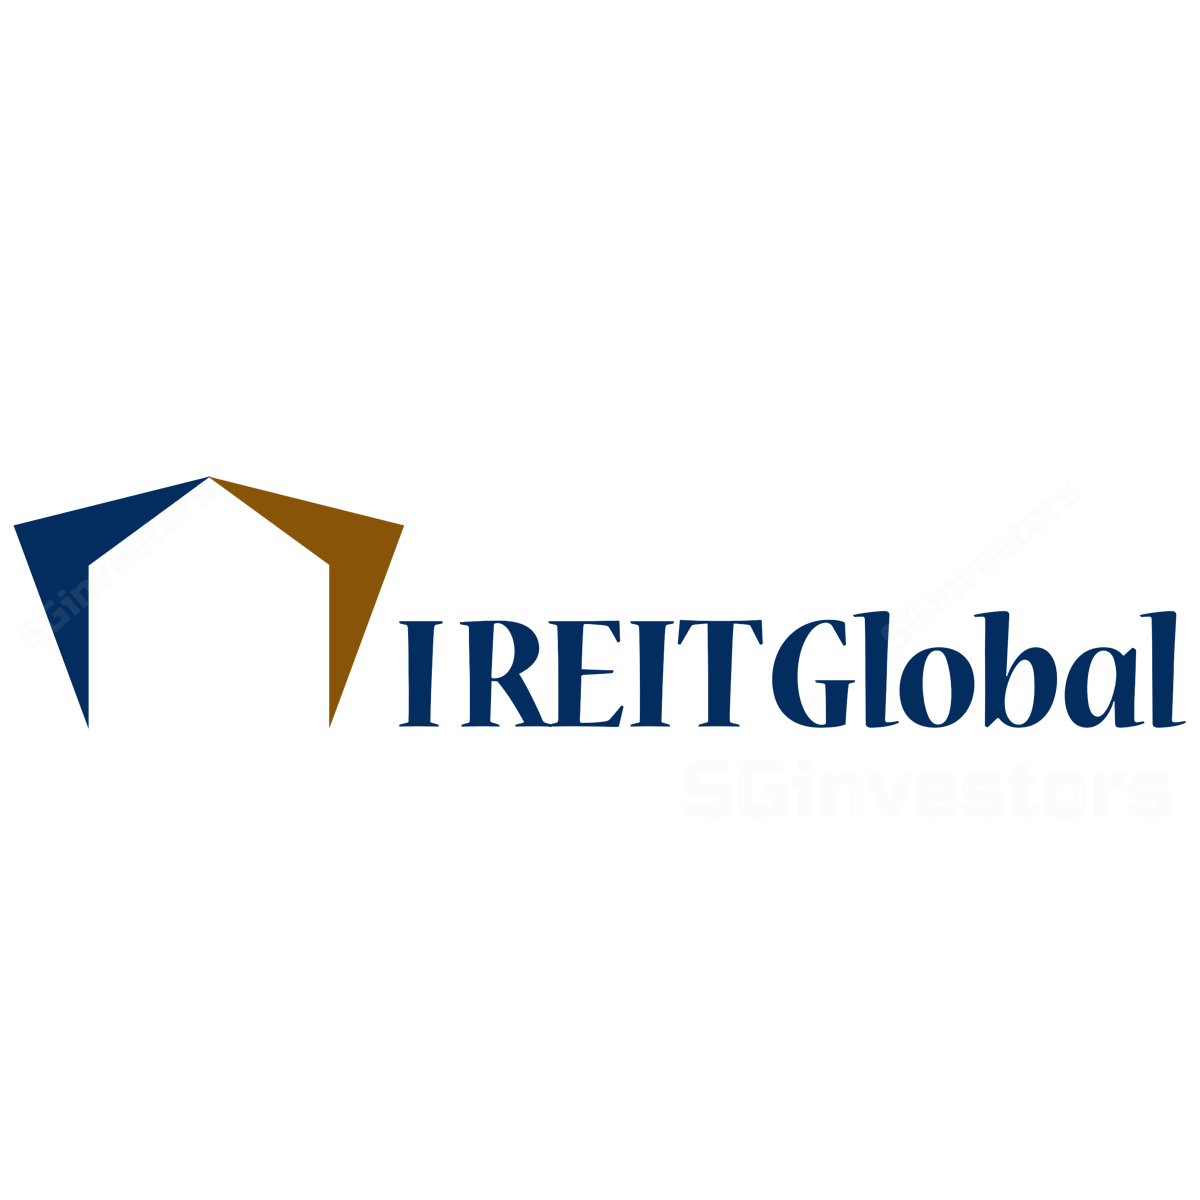 IREIT Global - DBS Vickers 2017-01-04: Waiting for new sponsor's direction